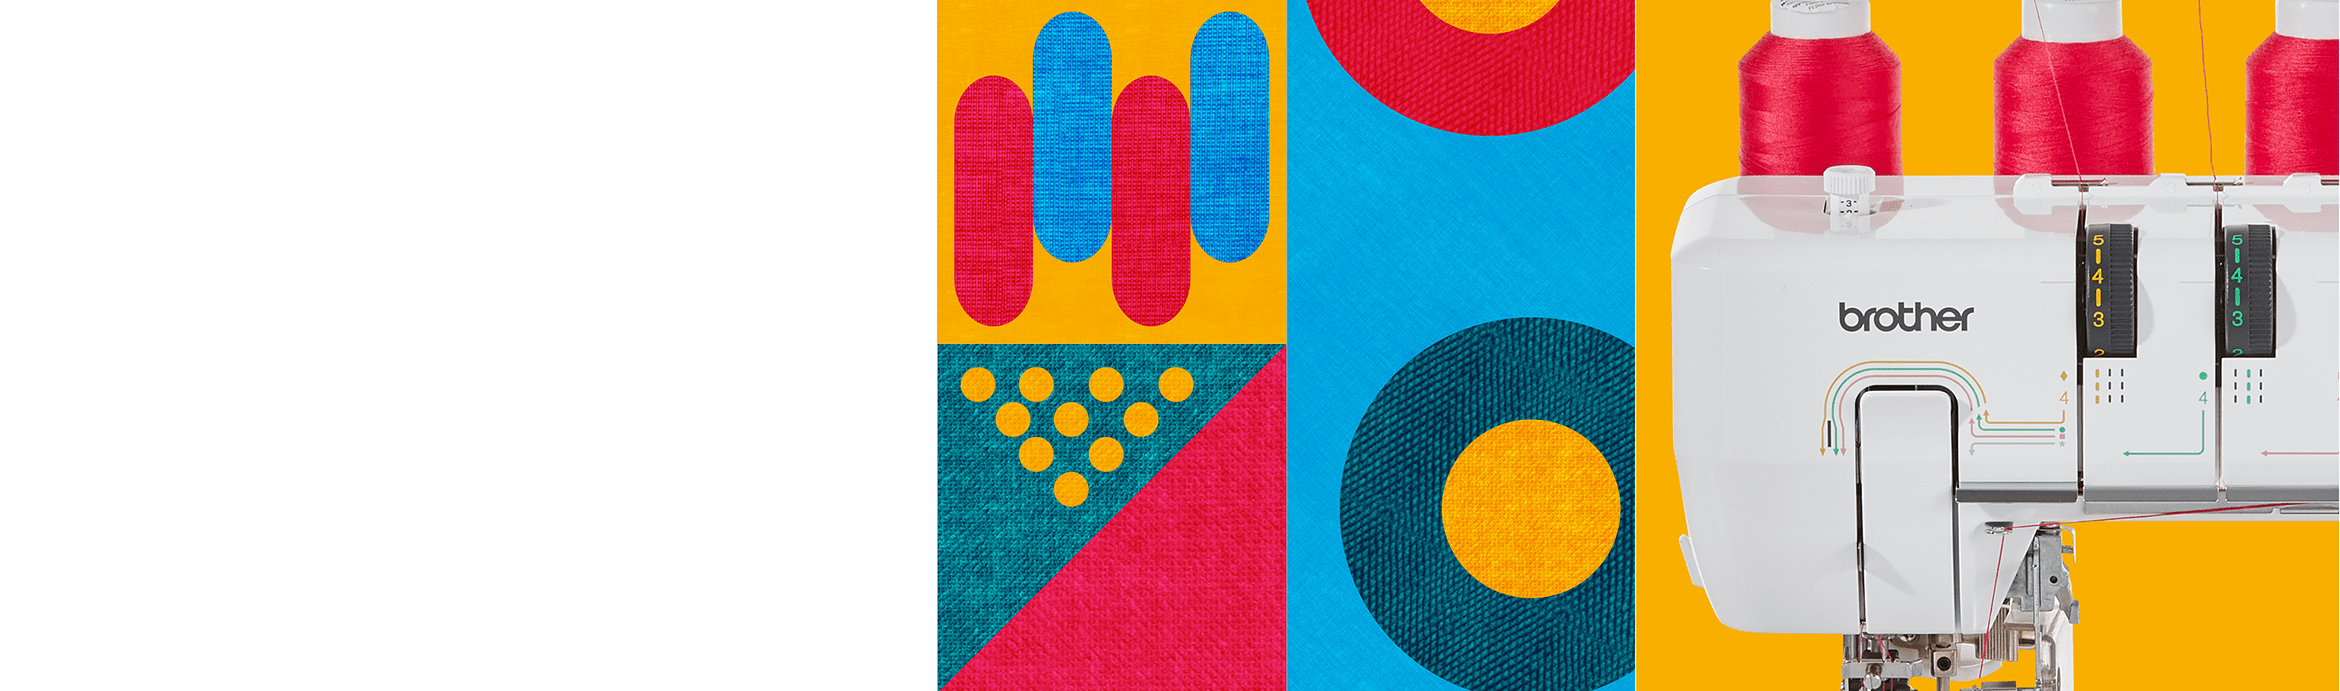 close up of a sewing machine on a multicoloured pattern background